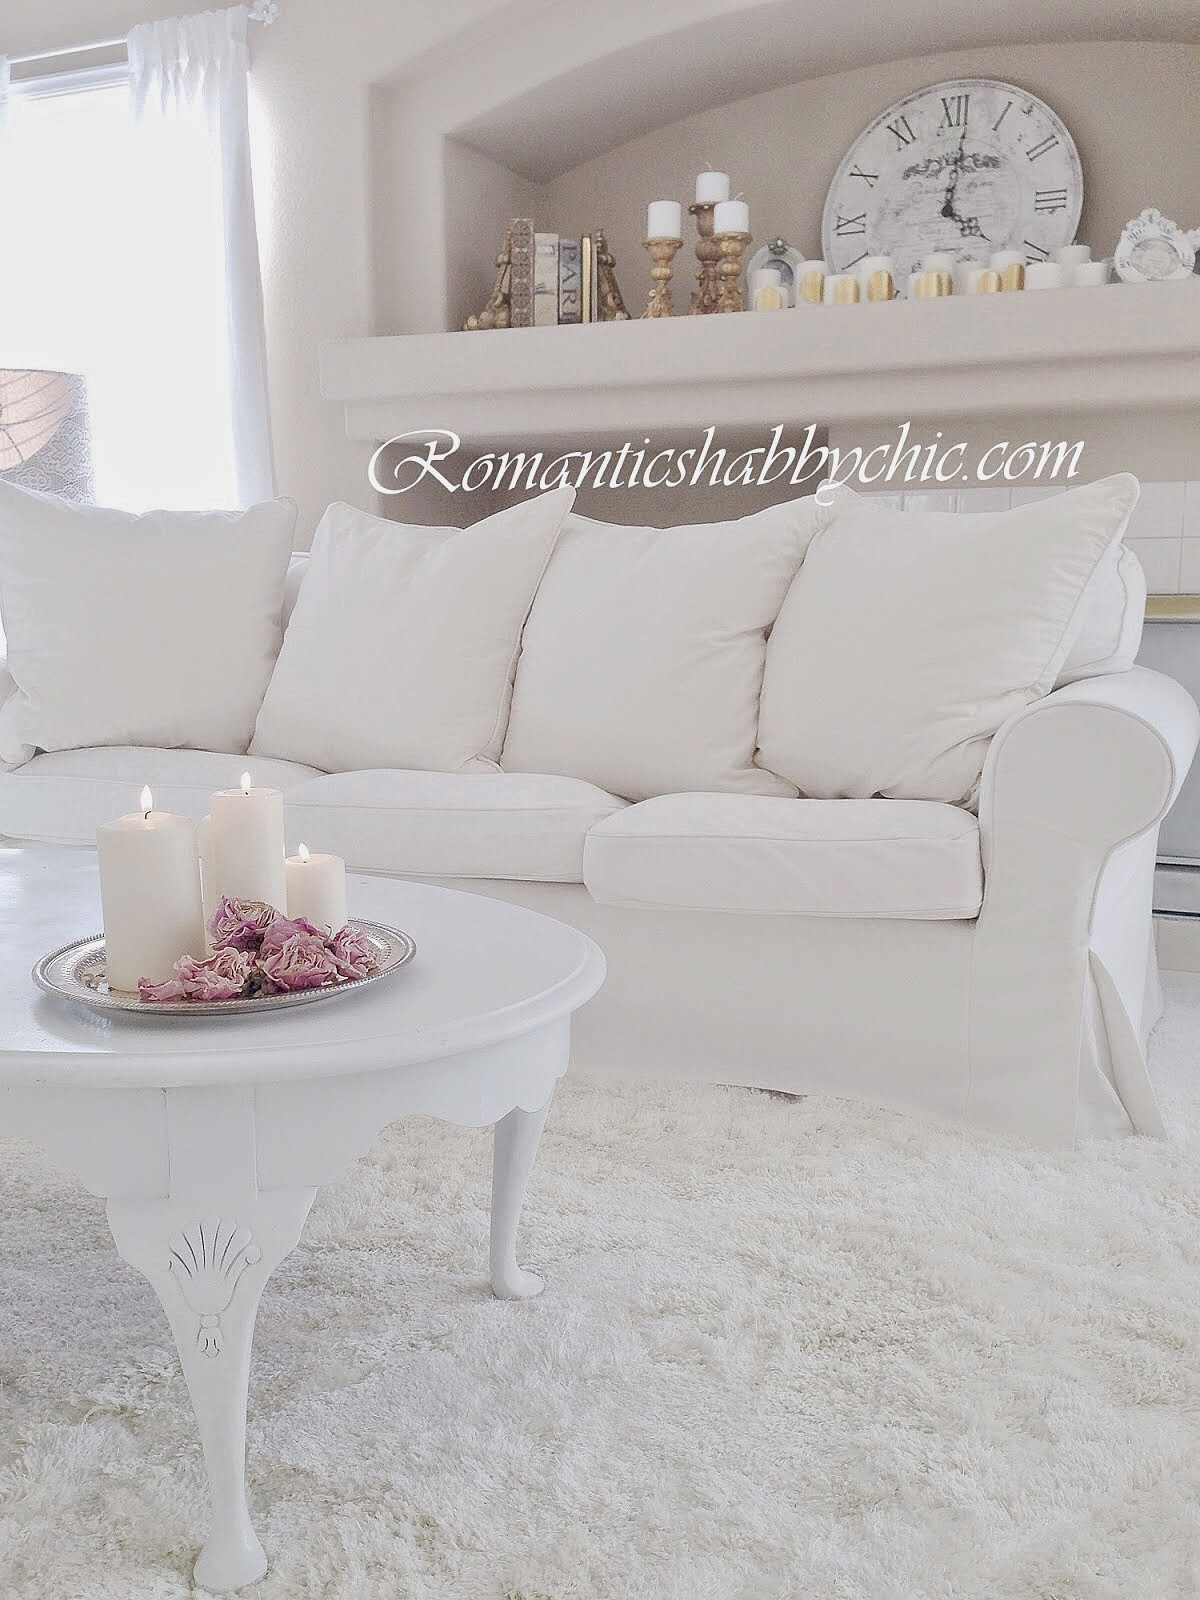 Shabby Chic And Eclectic Decorating Living Room: Romantic Shabby Chic Home: Romantic Shabby Chic : Pure